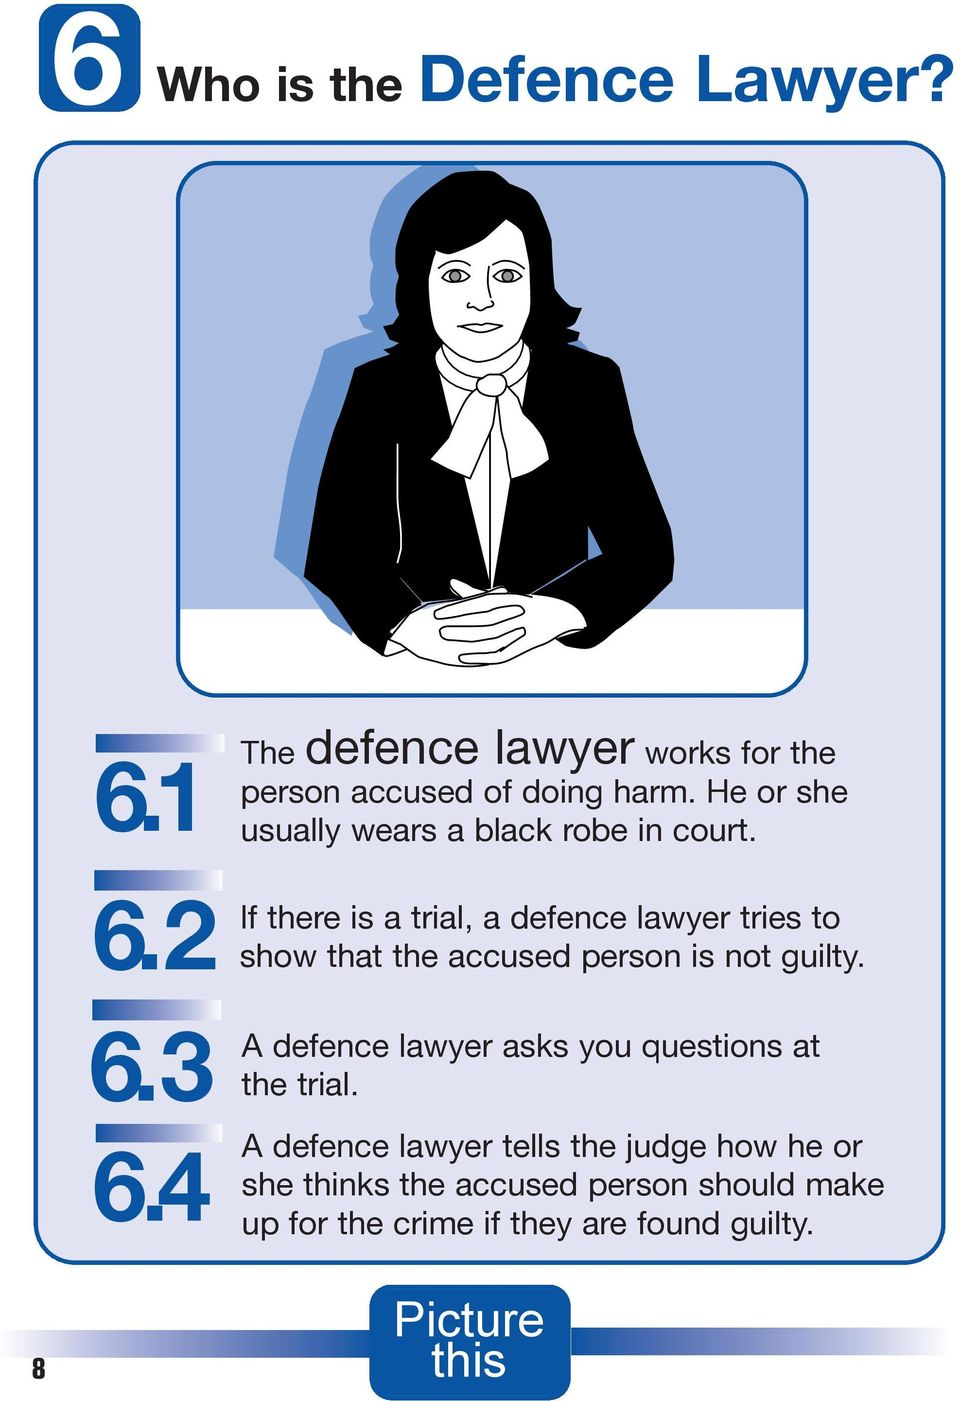 If there is a trial, a defence lawyer tries to show that the accused person is not guilty.